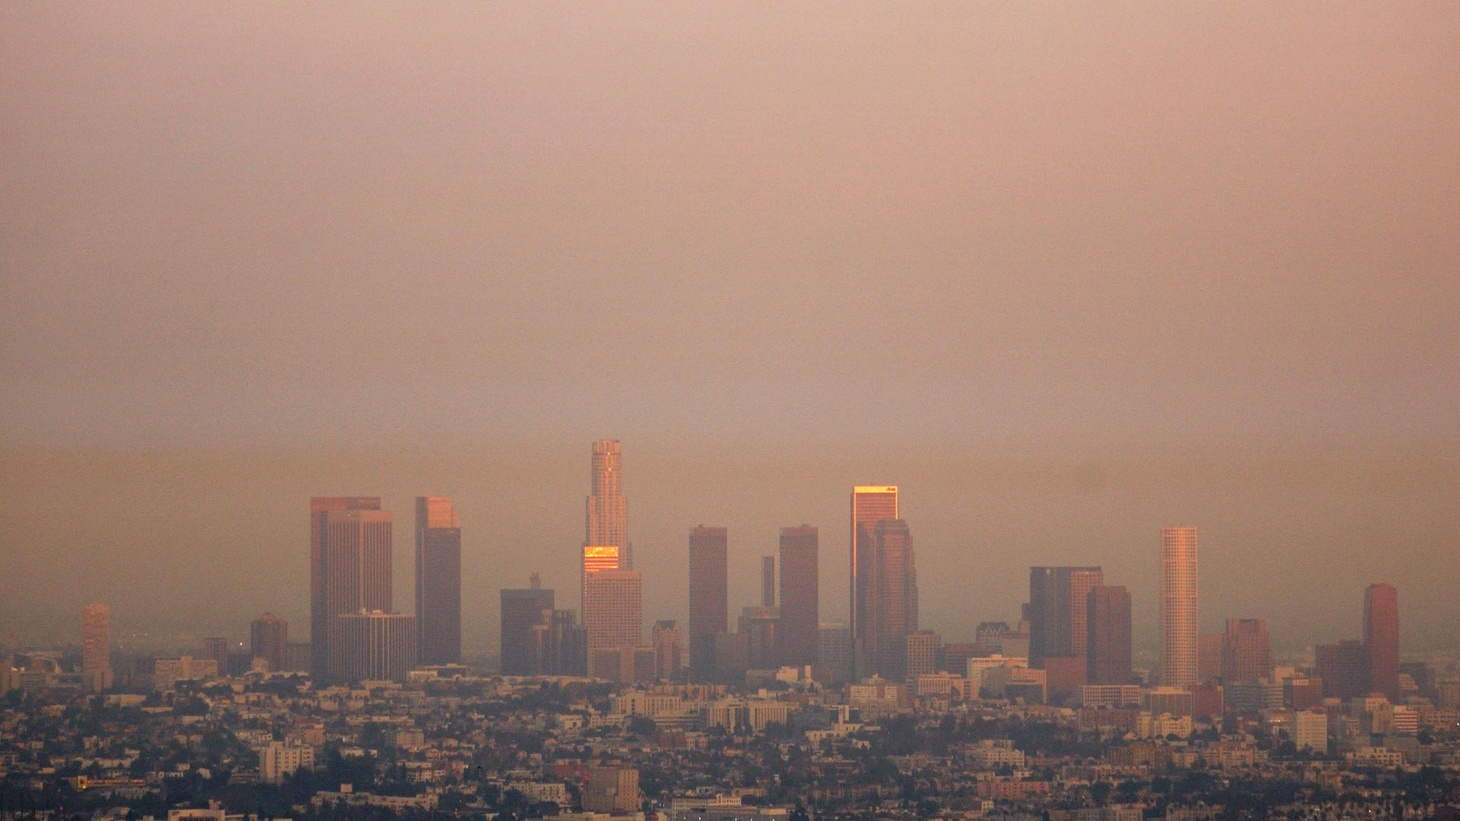 There has been progress, but LA is still the nation's smoggiest city, and 91% of Californians breath air that is dangerously polluted. That finding by the American Lung Association pits it against efforts to relax environmental laws during the economic recession. Also, efforts to delay Governor Schwarzenegger's attack on global warming. On our rebroadcast of To the Point, Arizona officials claim federal inaction required the state to crack down on illegal immigration.